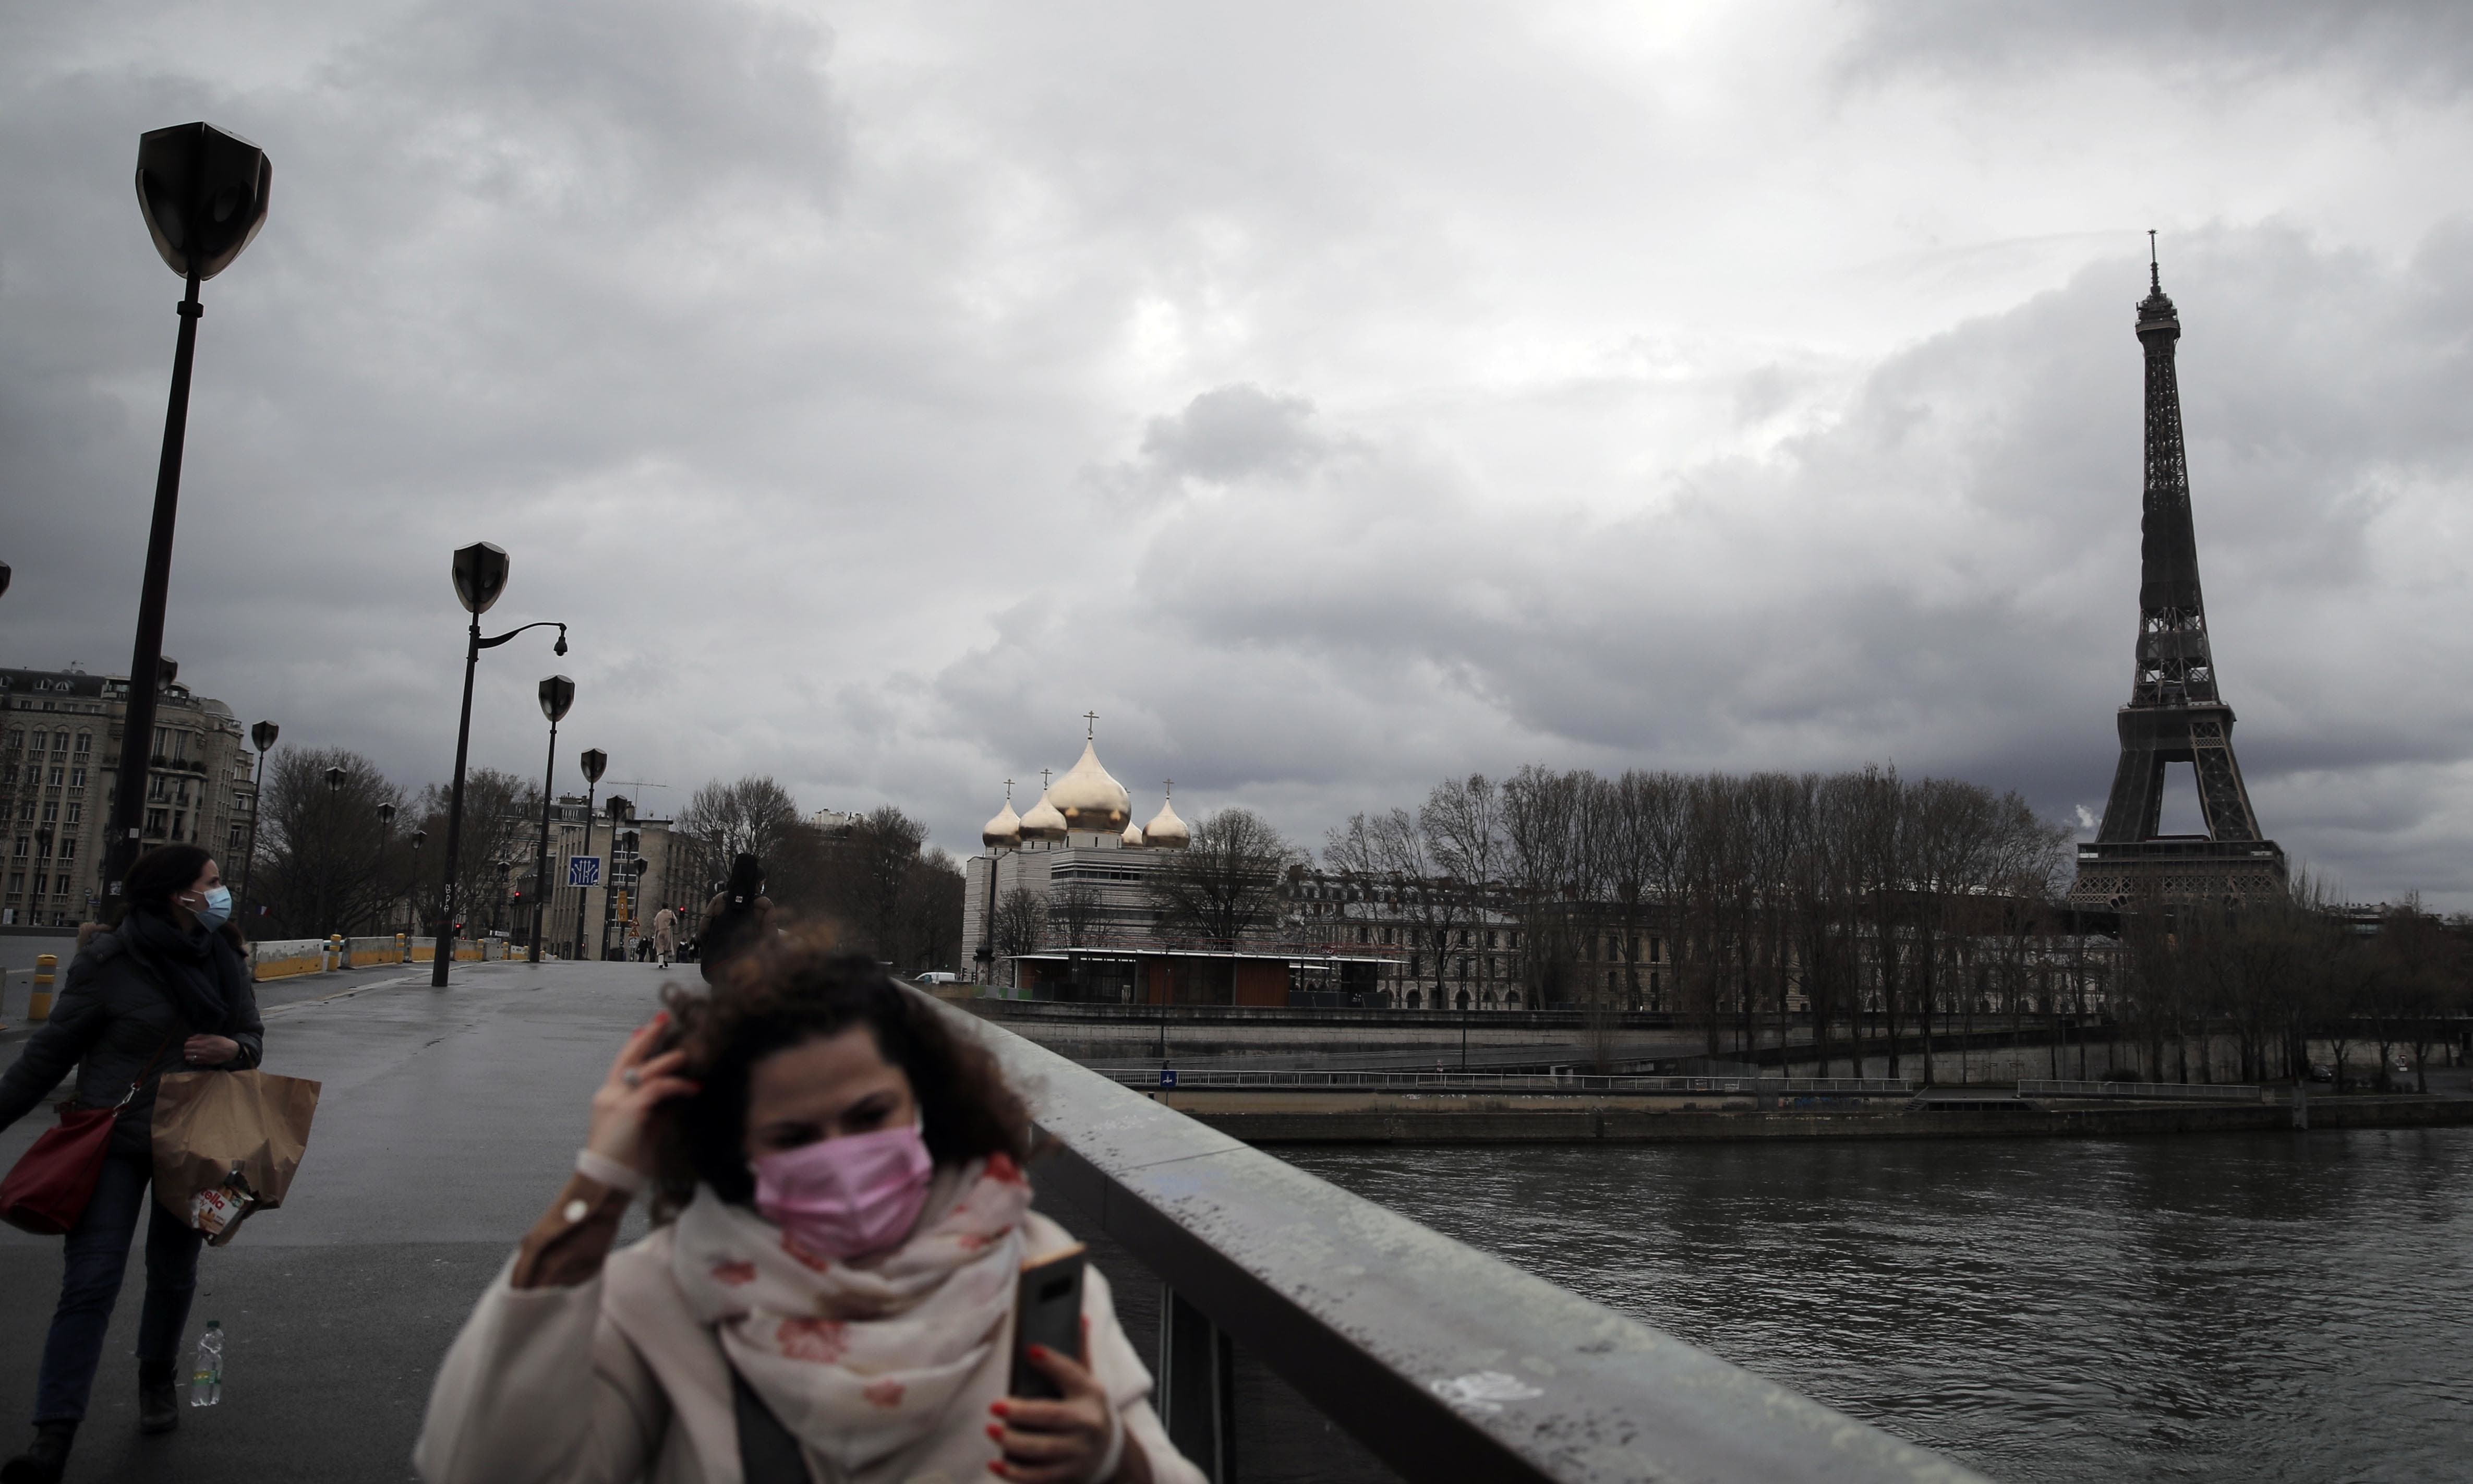 In this file photo, women cross a bridge as the Eiffel Tower is seen background in Paris. — AP